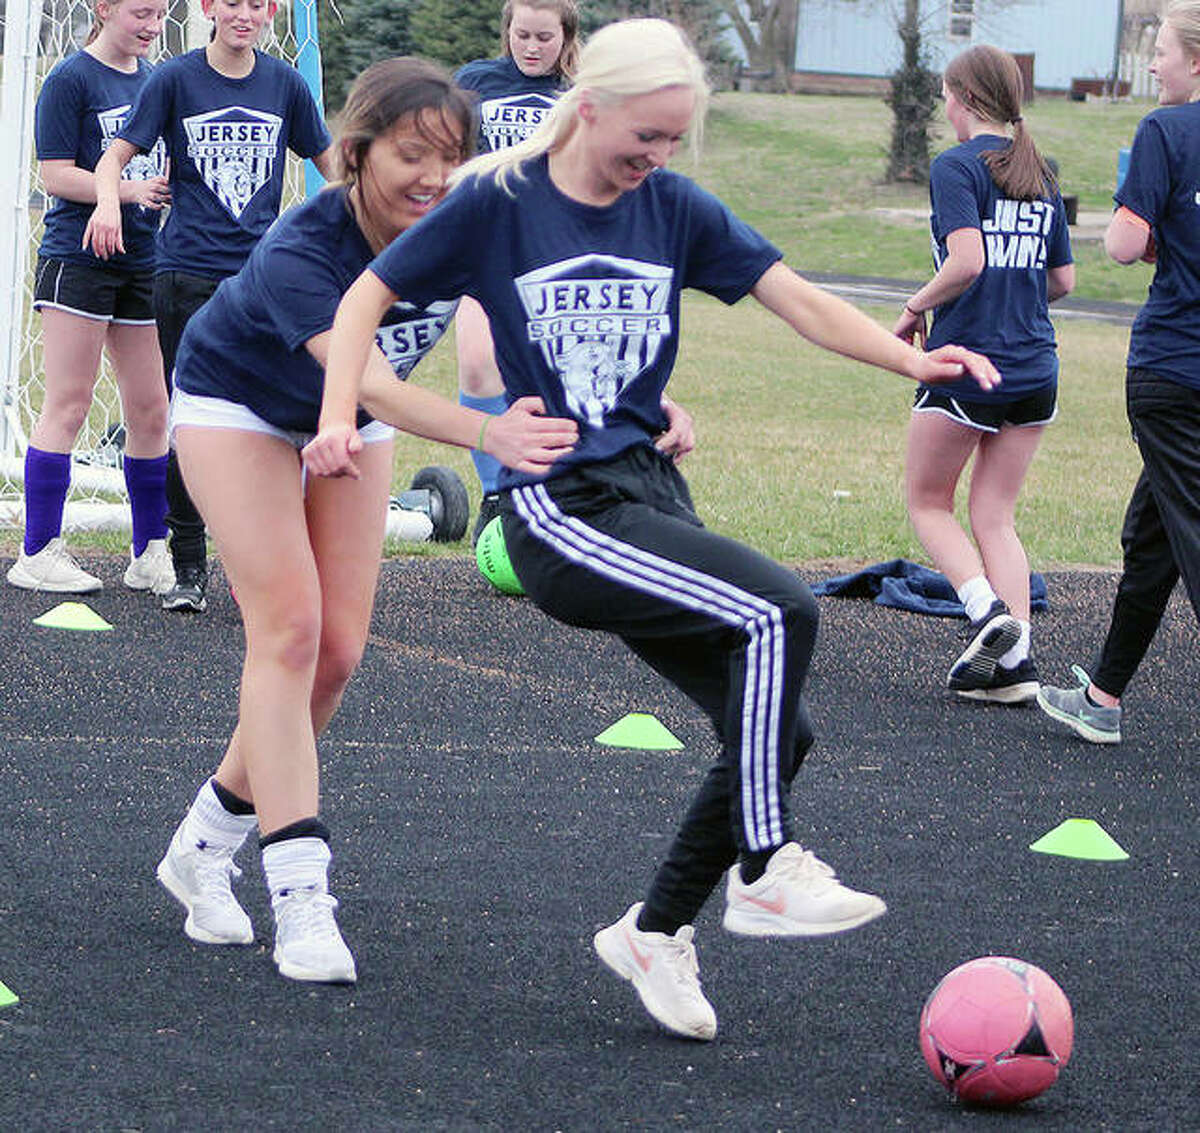 Brooklyn Winters, front, and Chloe Whited of Jersey work on a marking drill during a 2020 practice. In Wednesday's 2021 season opener, Winters scored twice and Whited once in a 6-2 home win over Southwestern.